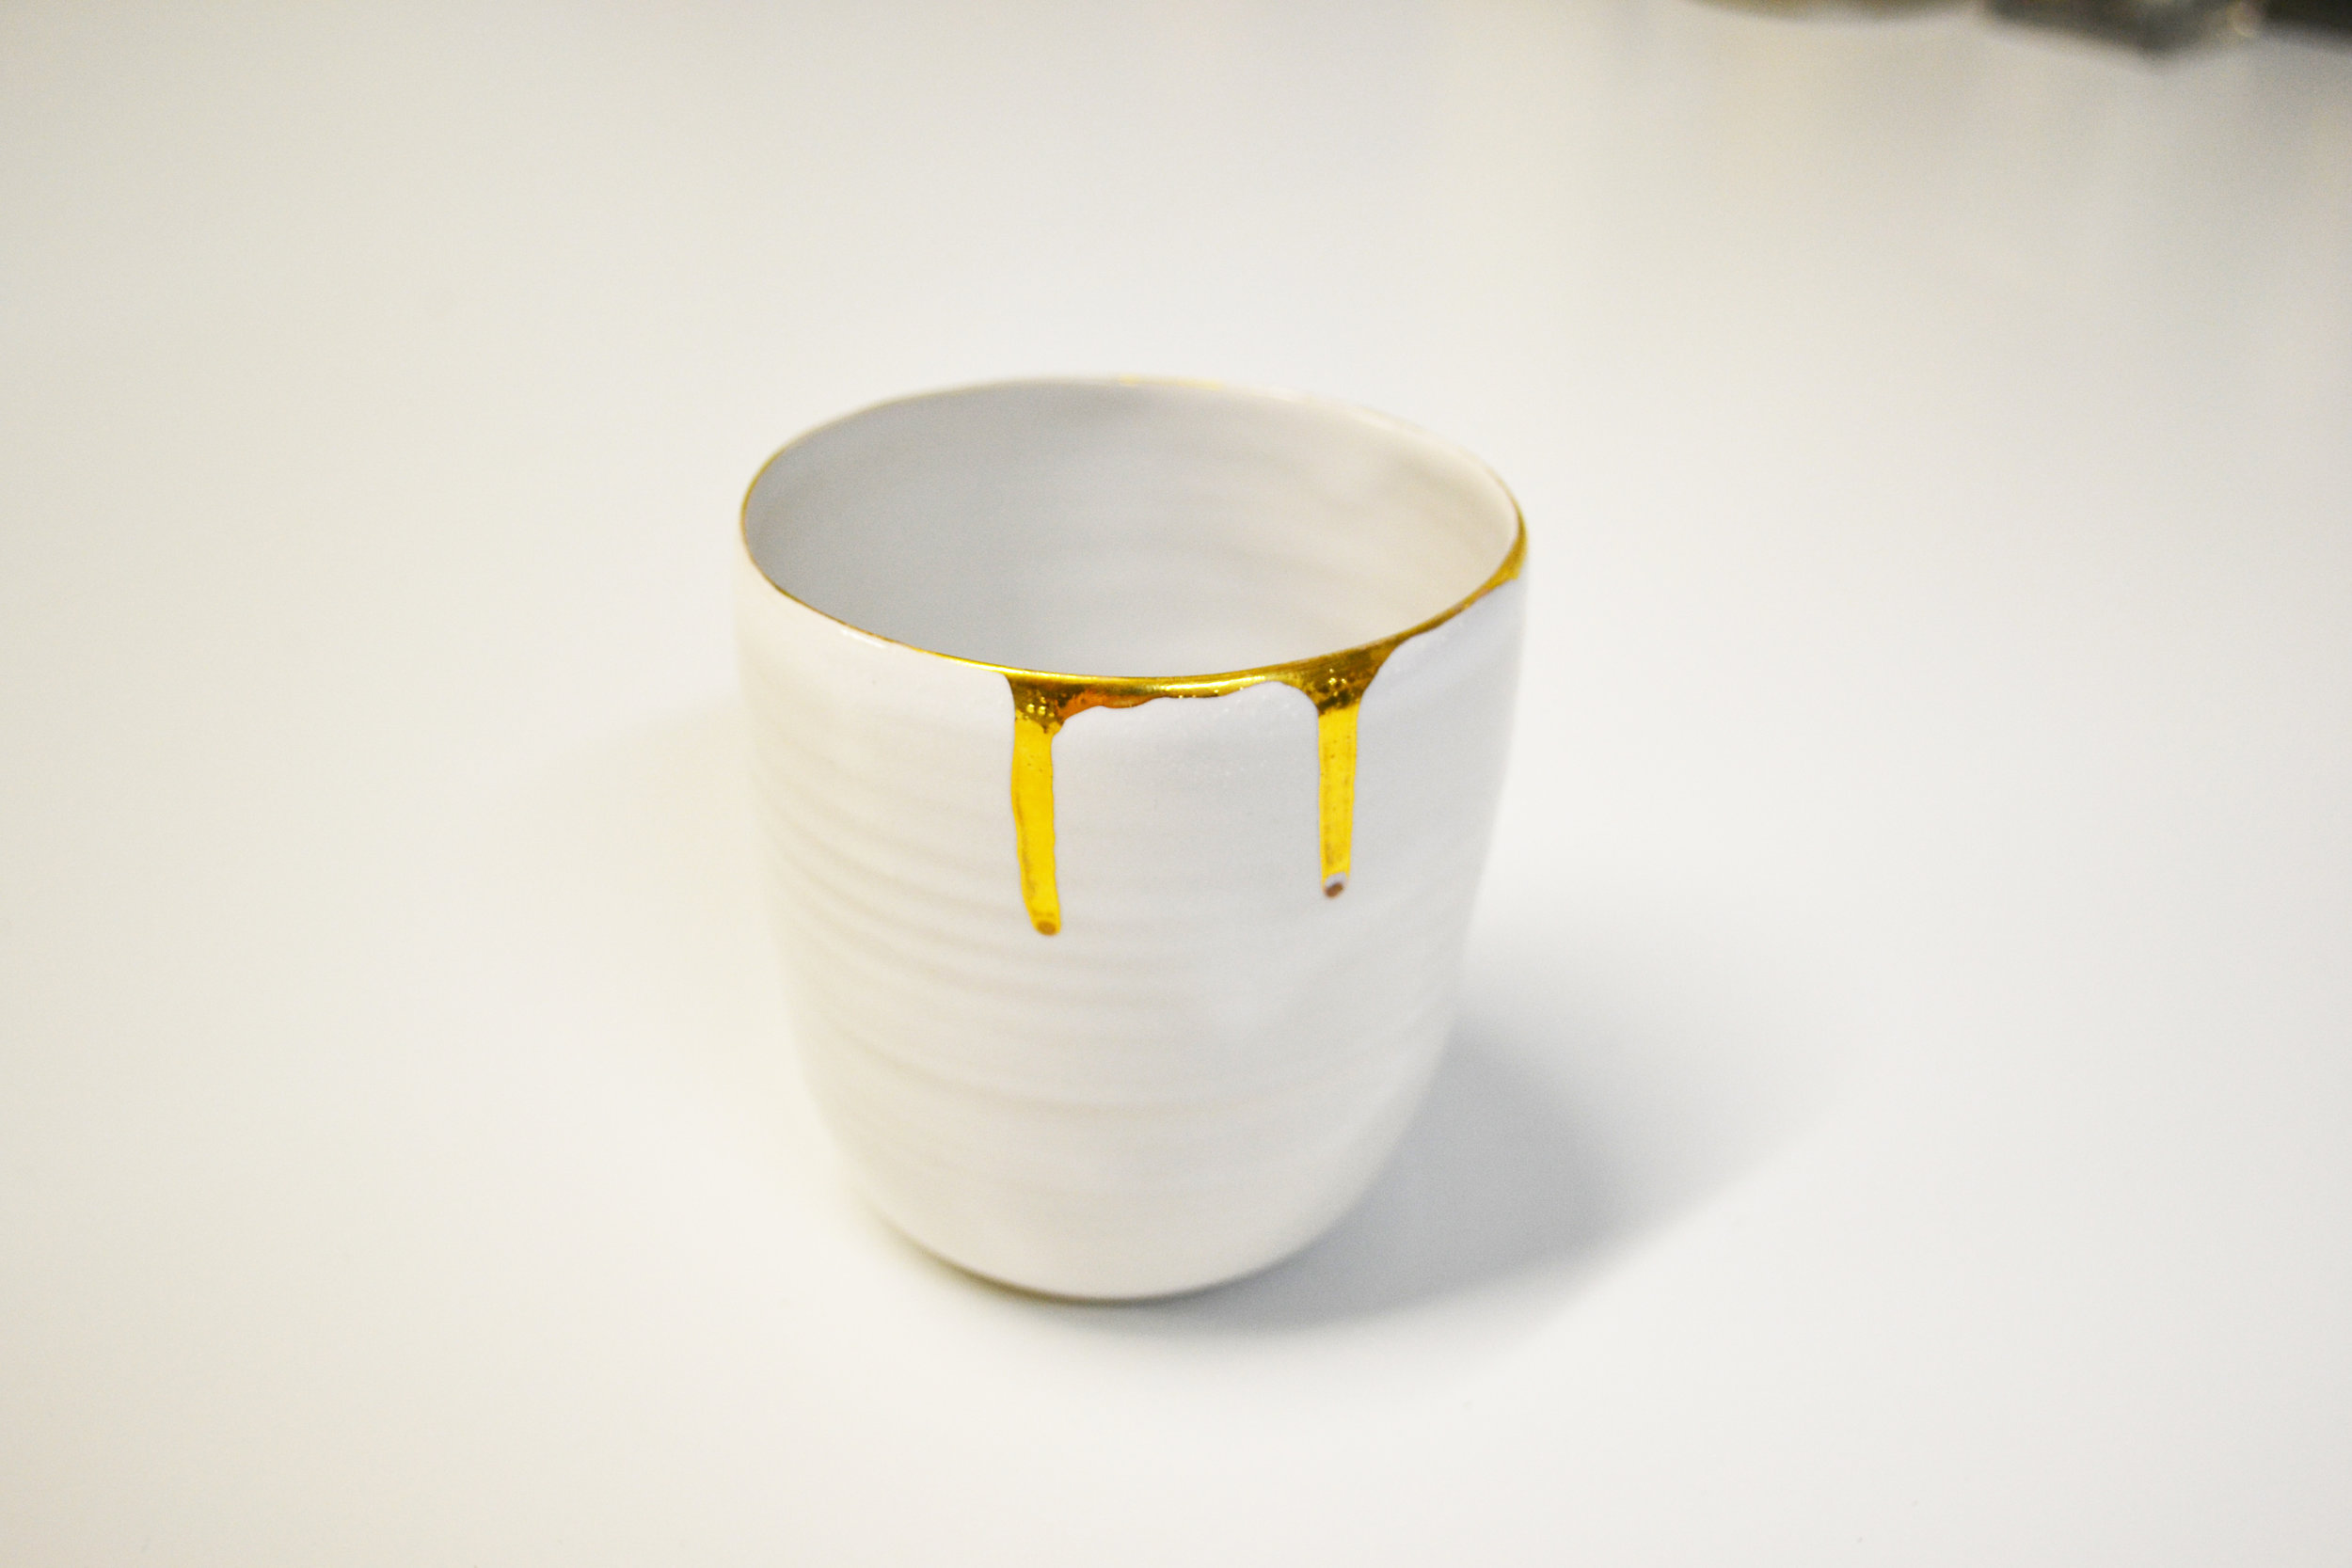 Liquid gold tableware, size - 35 cl, material - stoneware ceramics, technique - wheel thrown, decorated with liquid gold, year - 2016, place - Helsinki, Finland